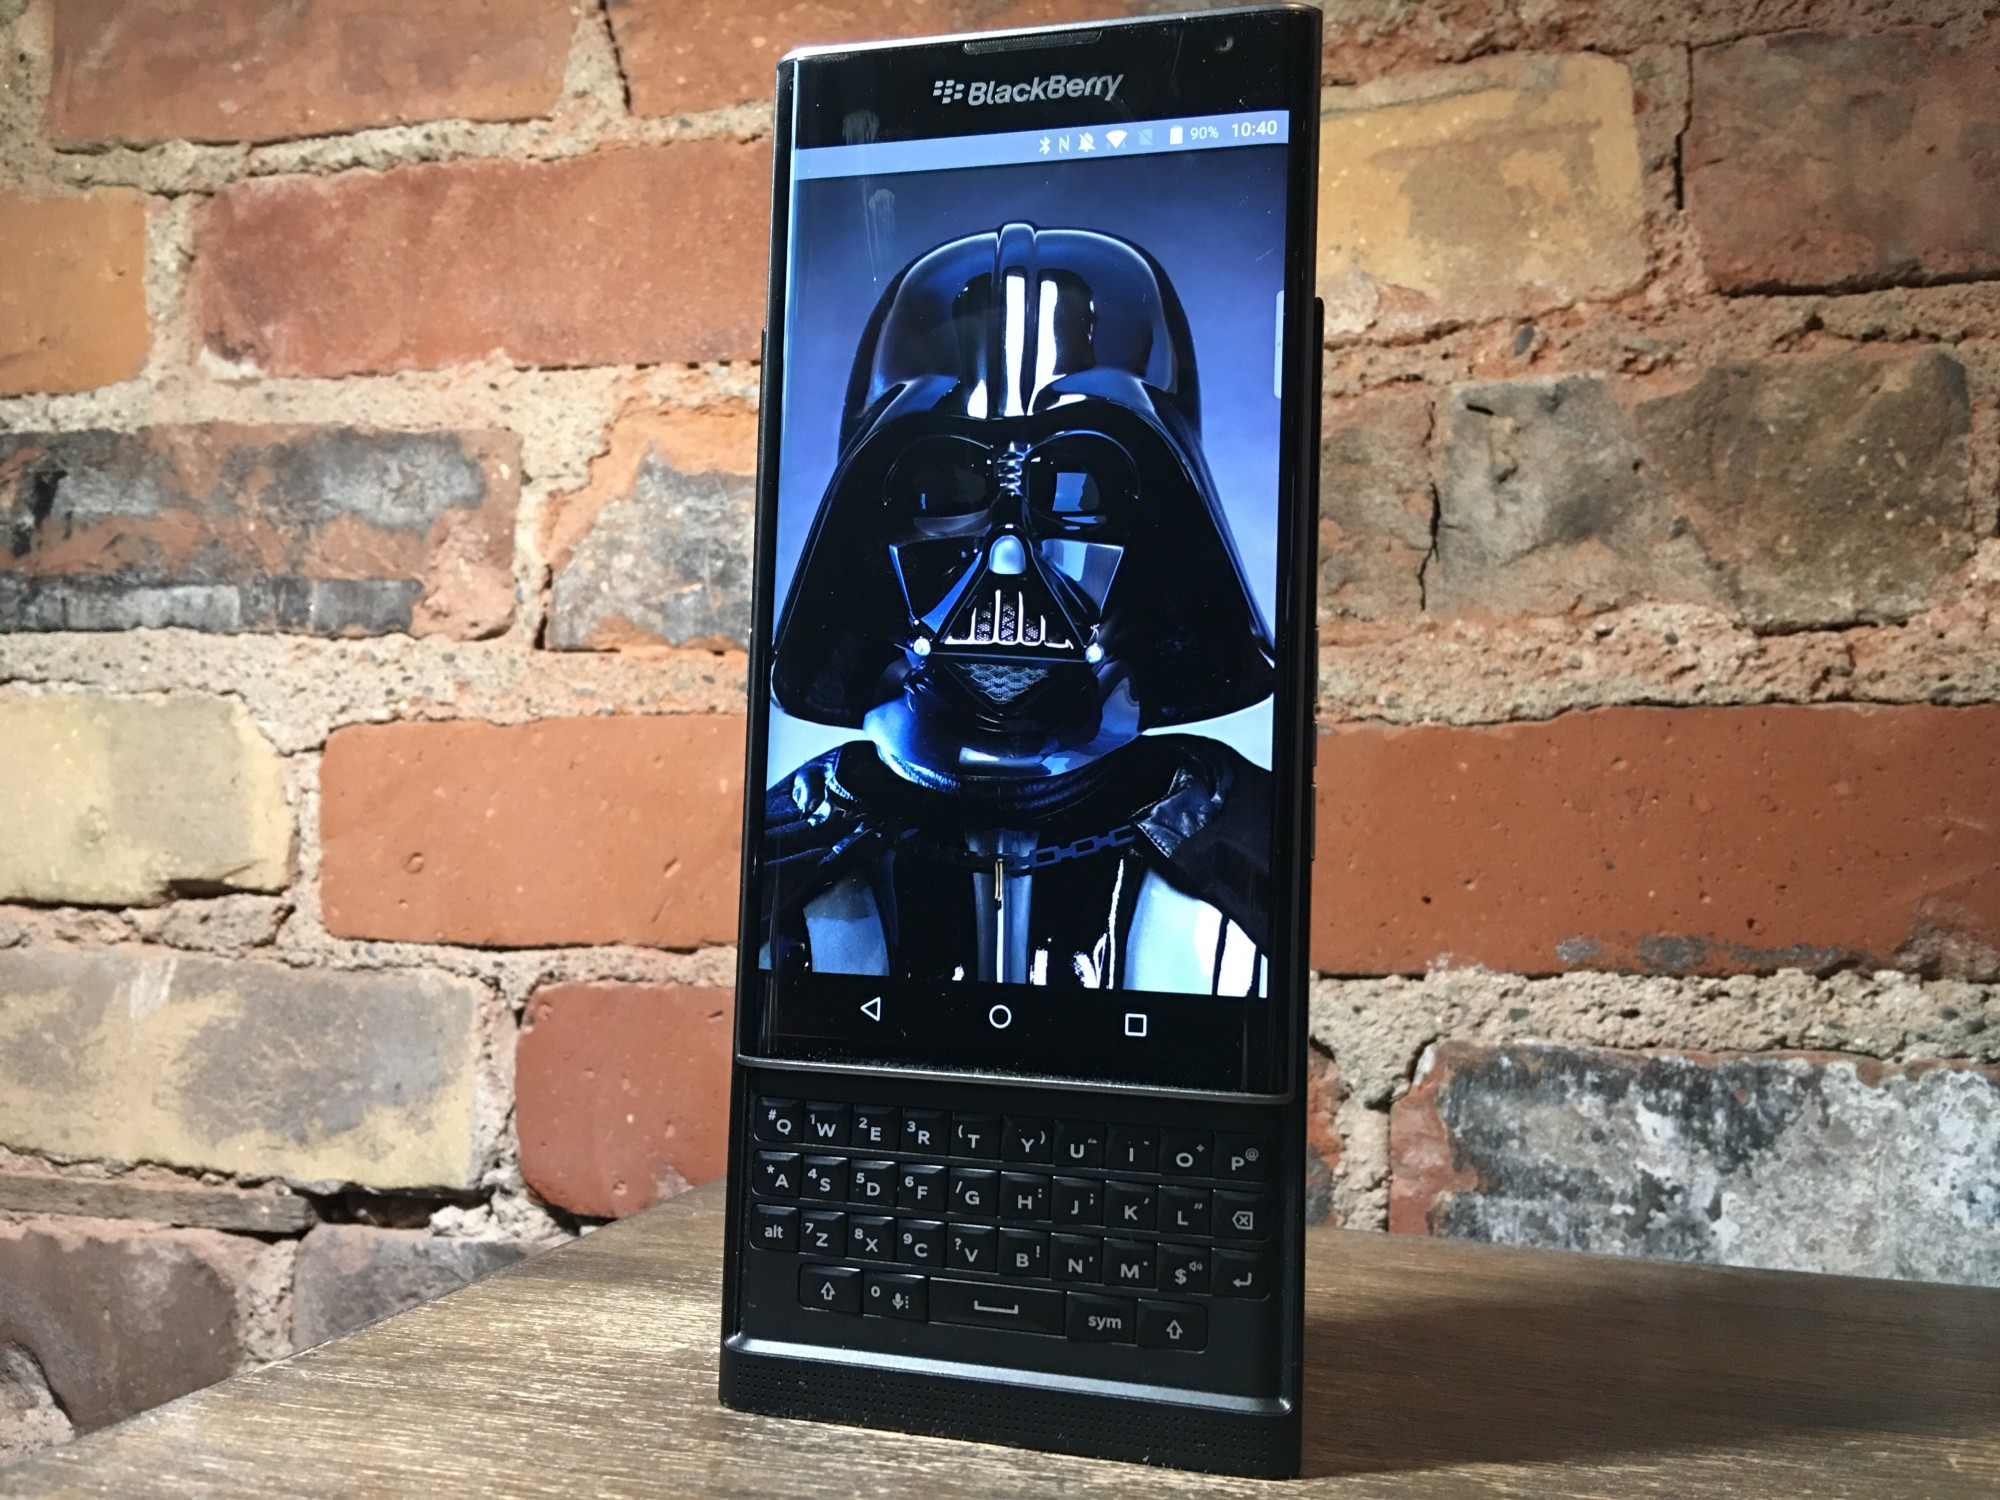 Blackberry-starwars